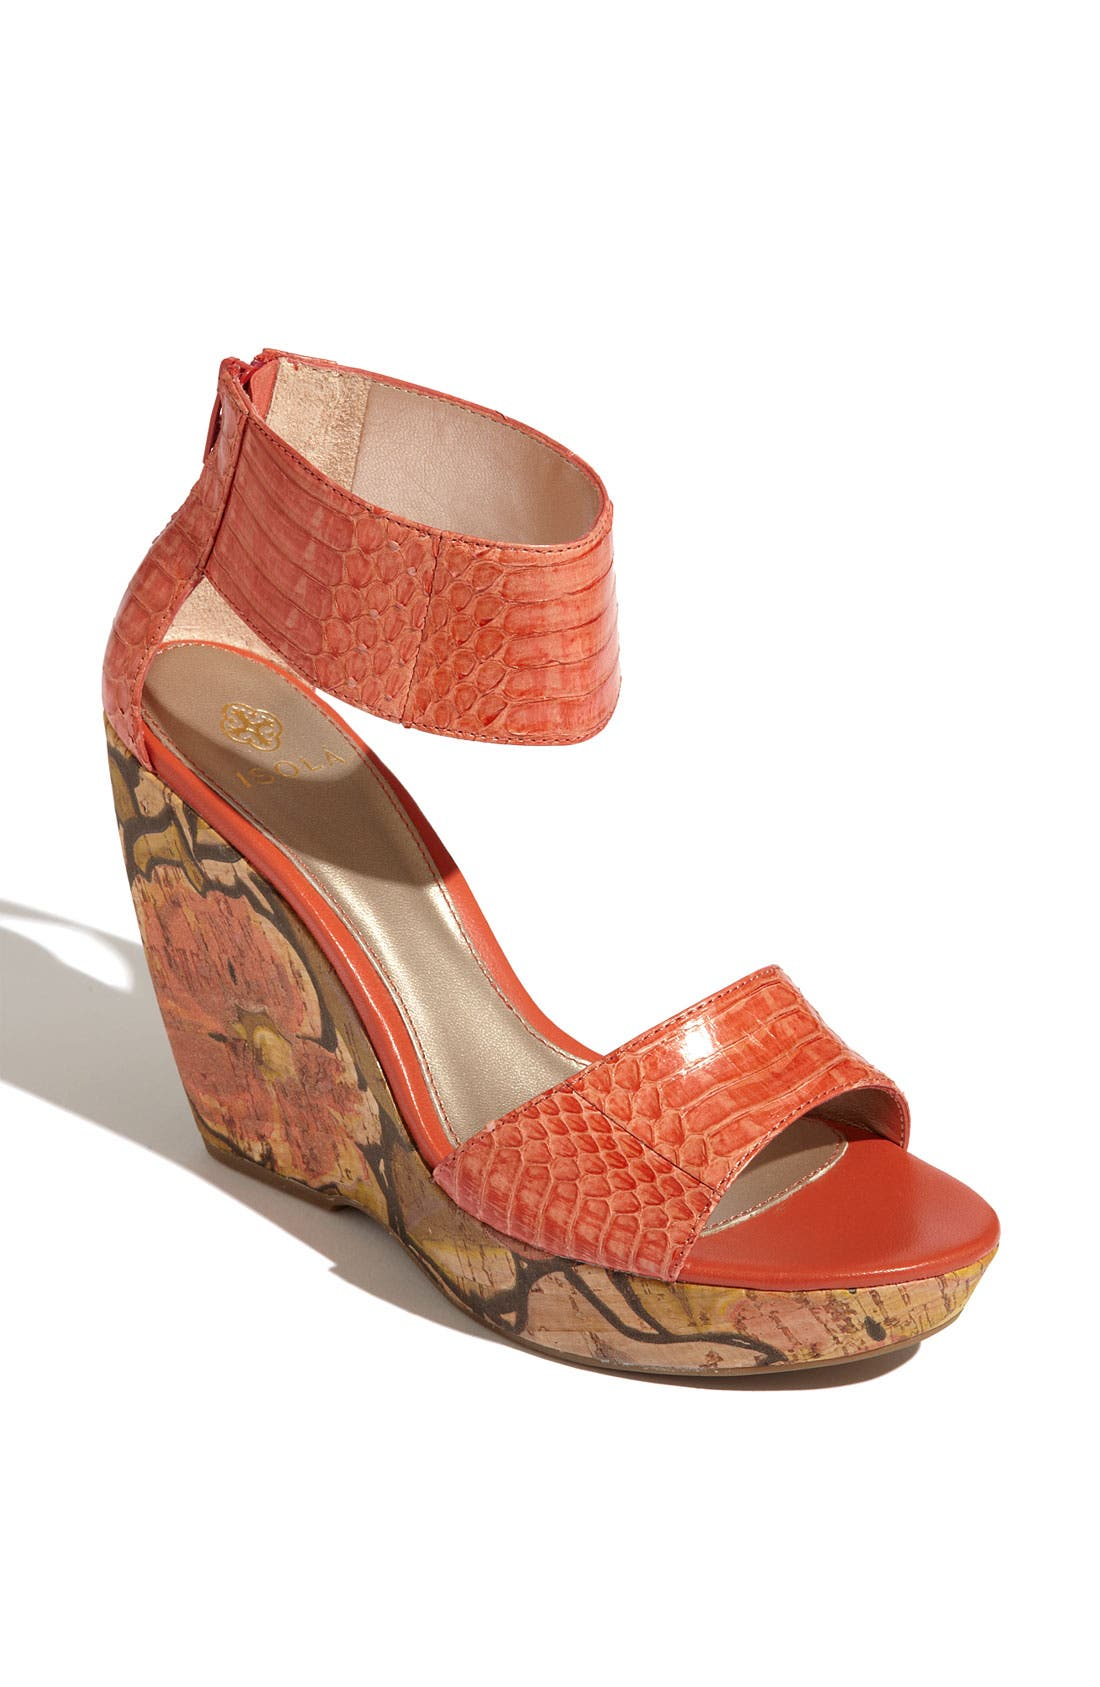 Main Image - Isolá 'Oasis' Wedge Sandal